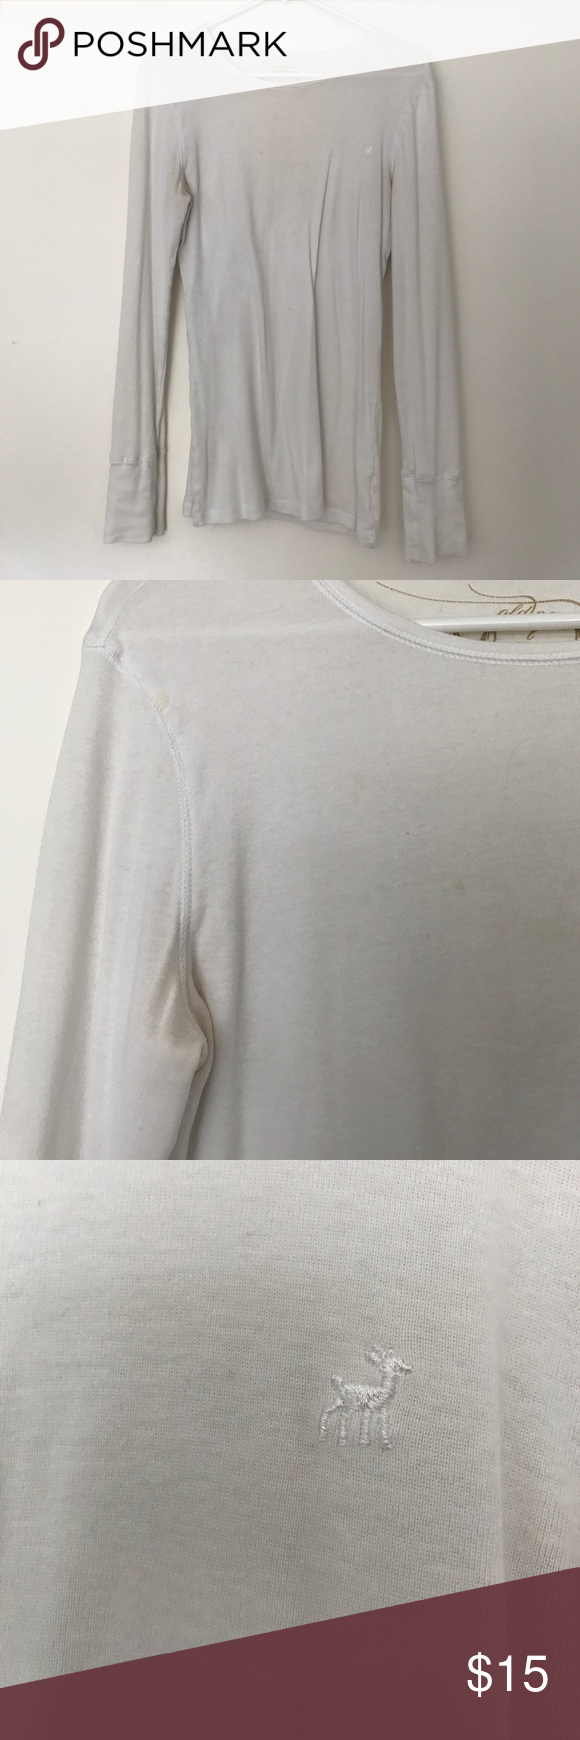 Old Navy fitted long sleeve top Old Navy fitted white long sleeve top. Some stains shown in photos Old Navy Tops Tees - Long Sleeve